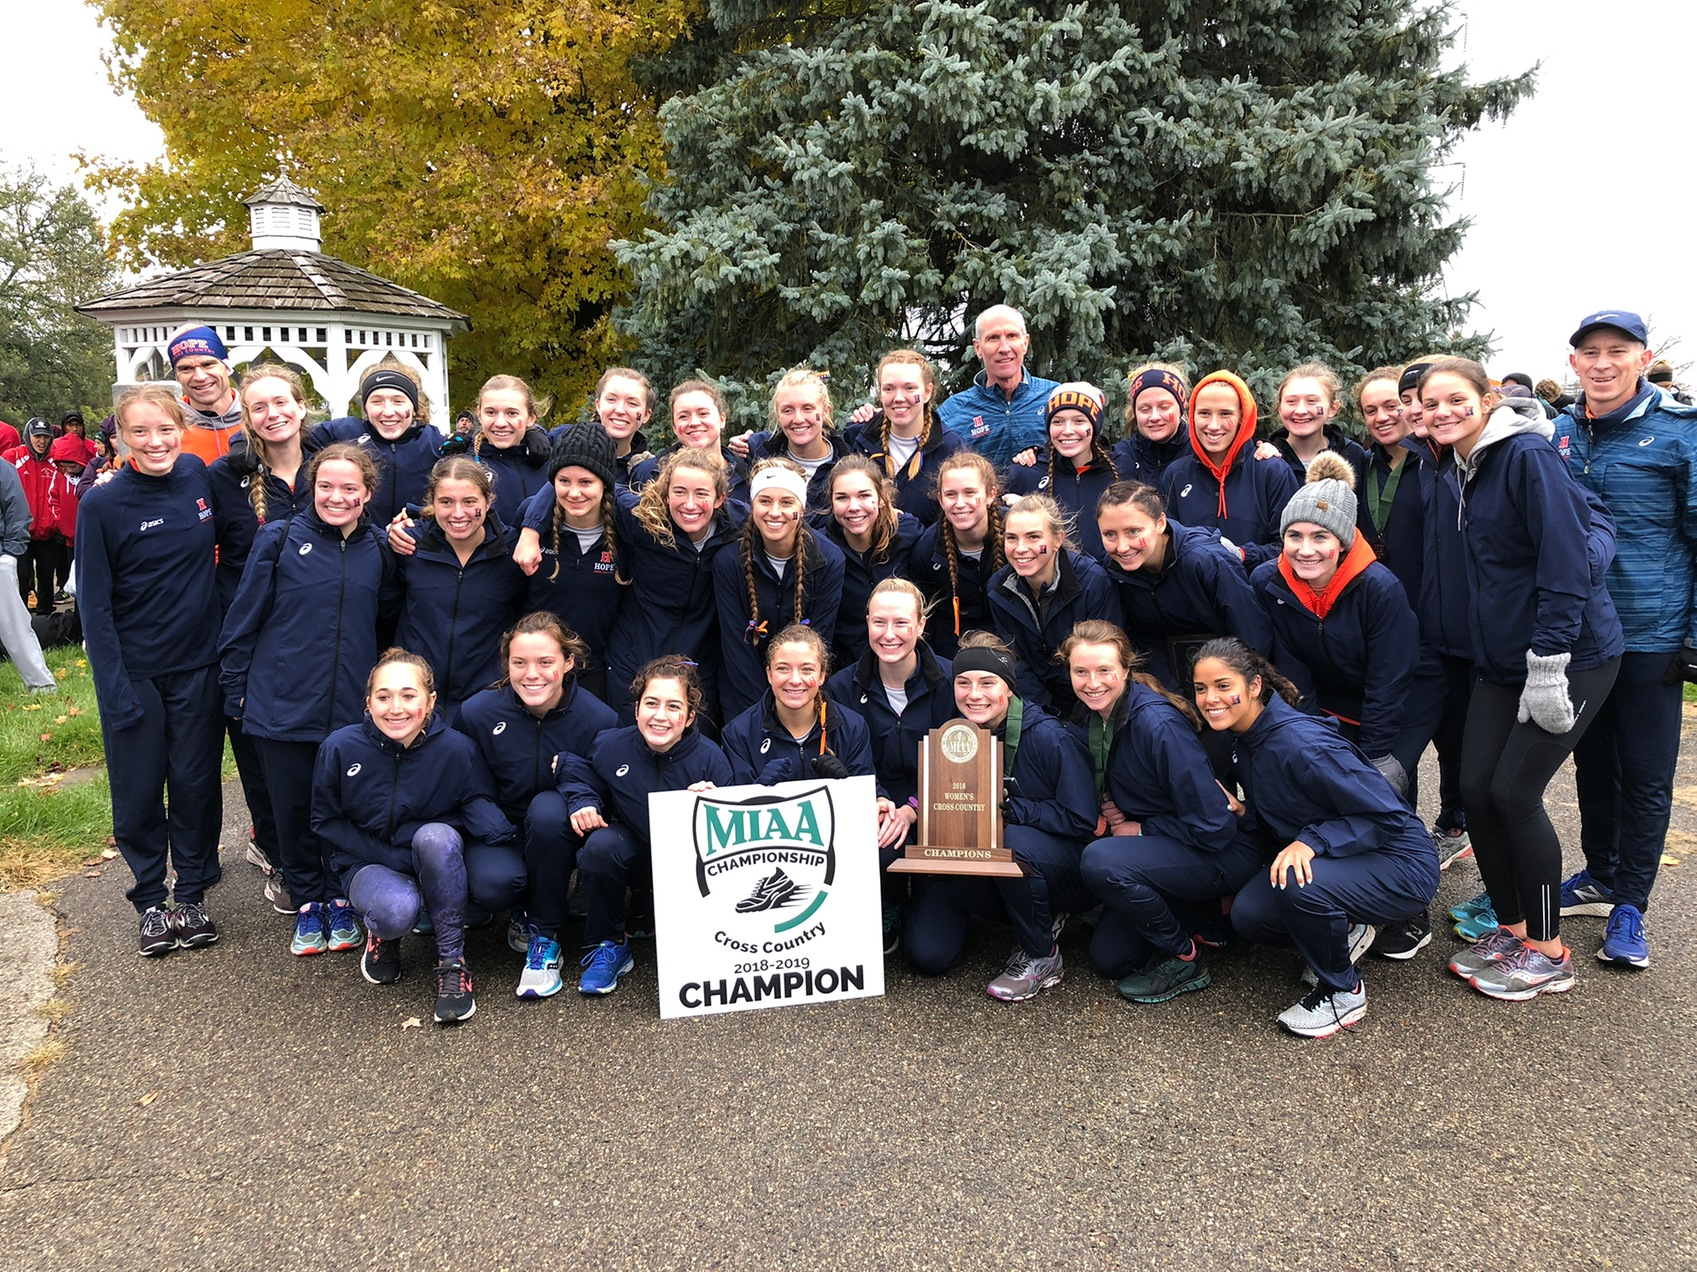 Hope runners pose together with the MIAA trophy